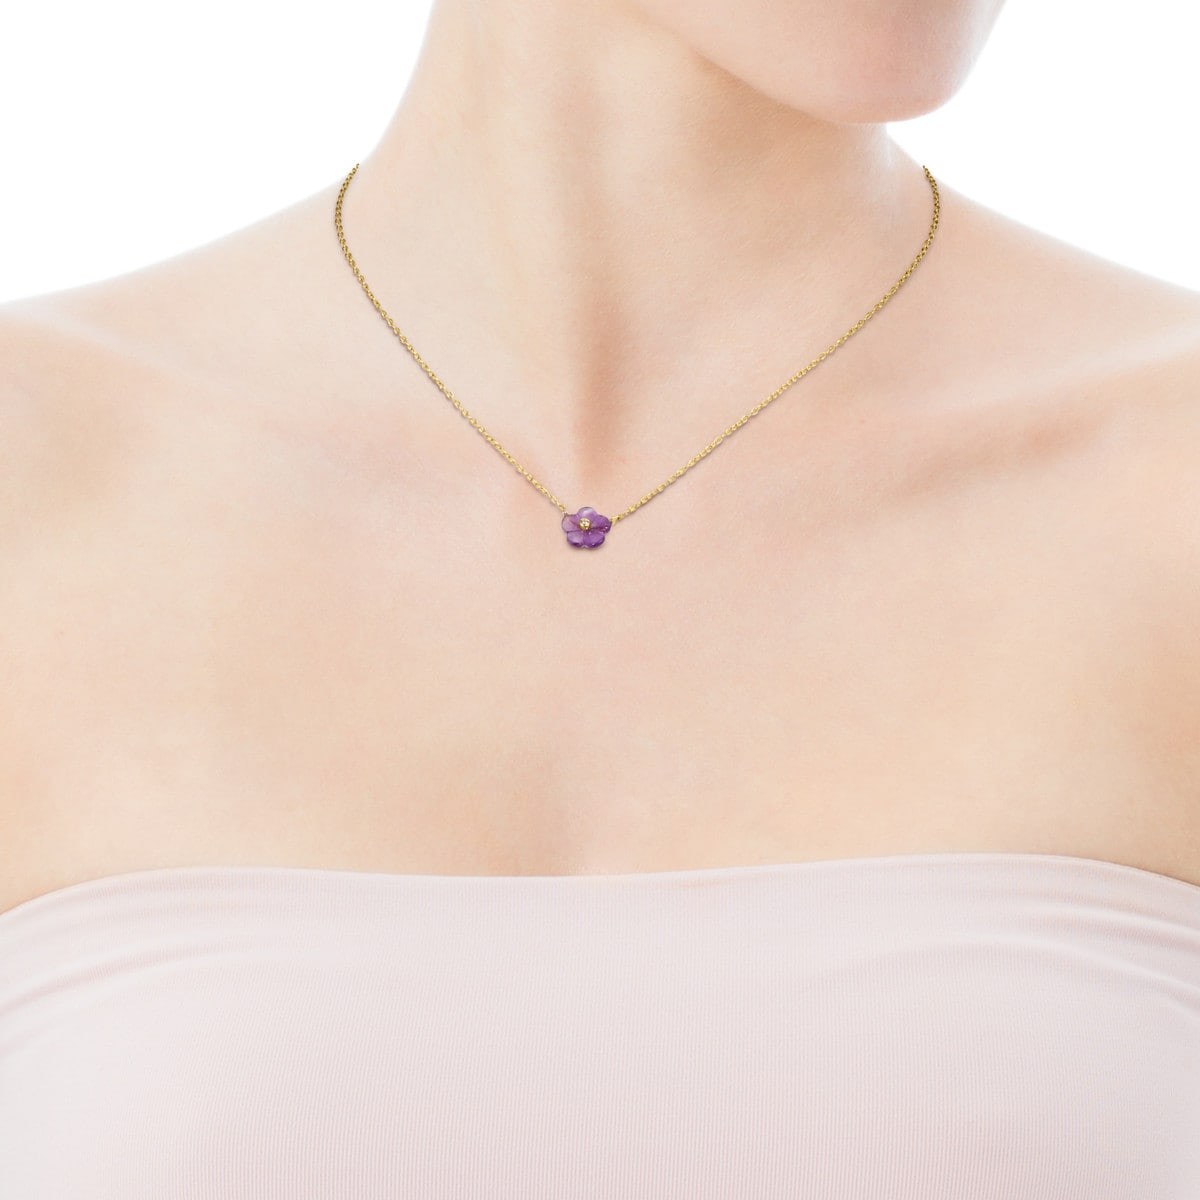 Vita Necklace in Gold with Amethyst and Diamond